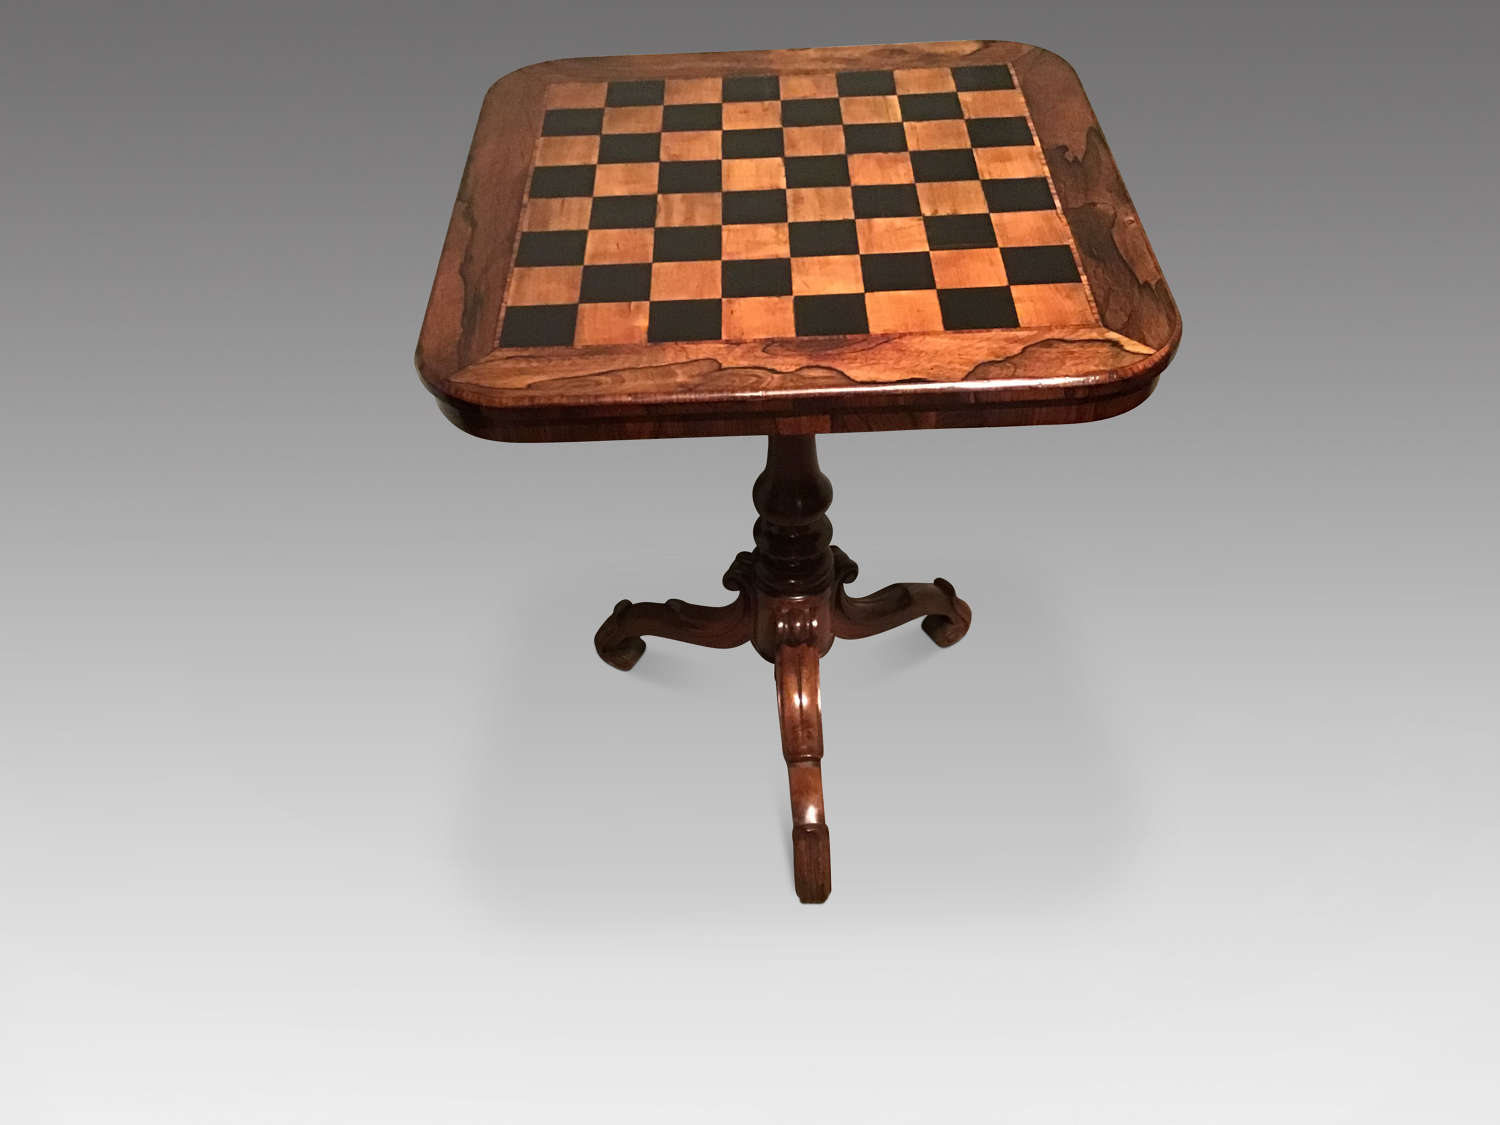 Antique rosewood chess table